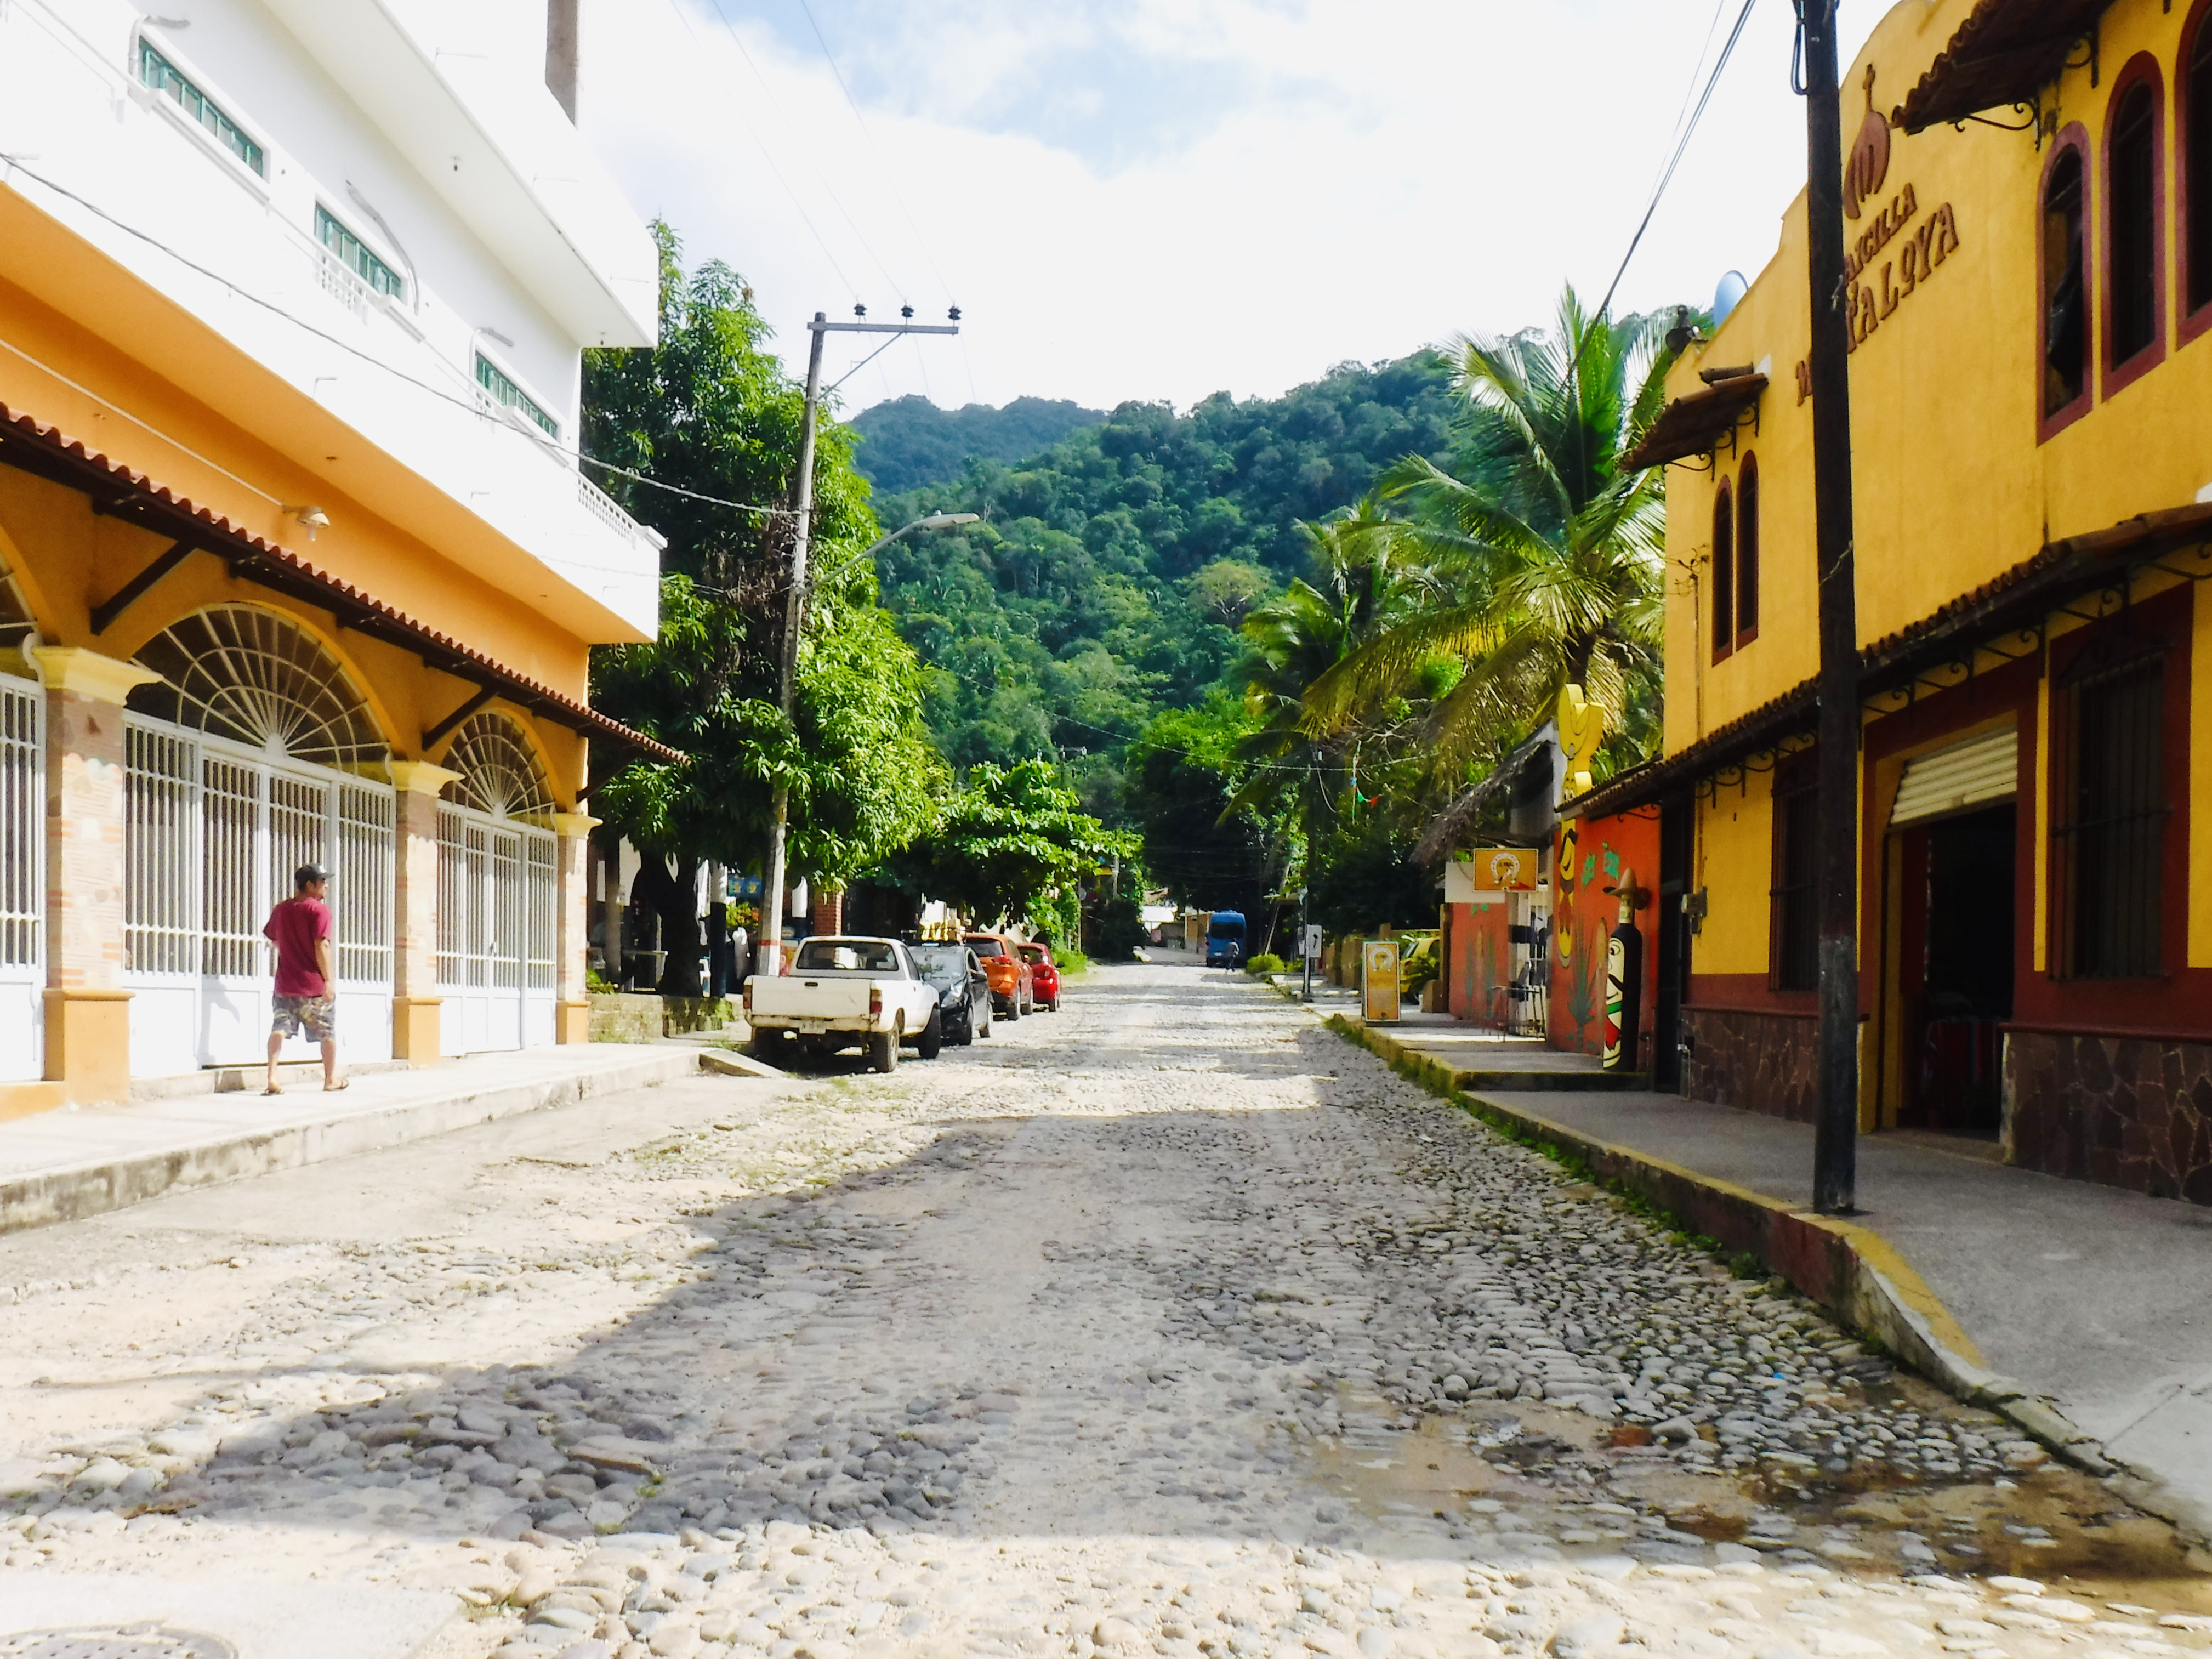 Cobbled street with views of the bushy mountains